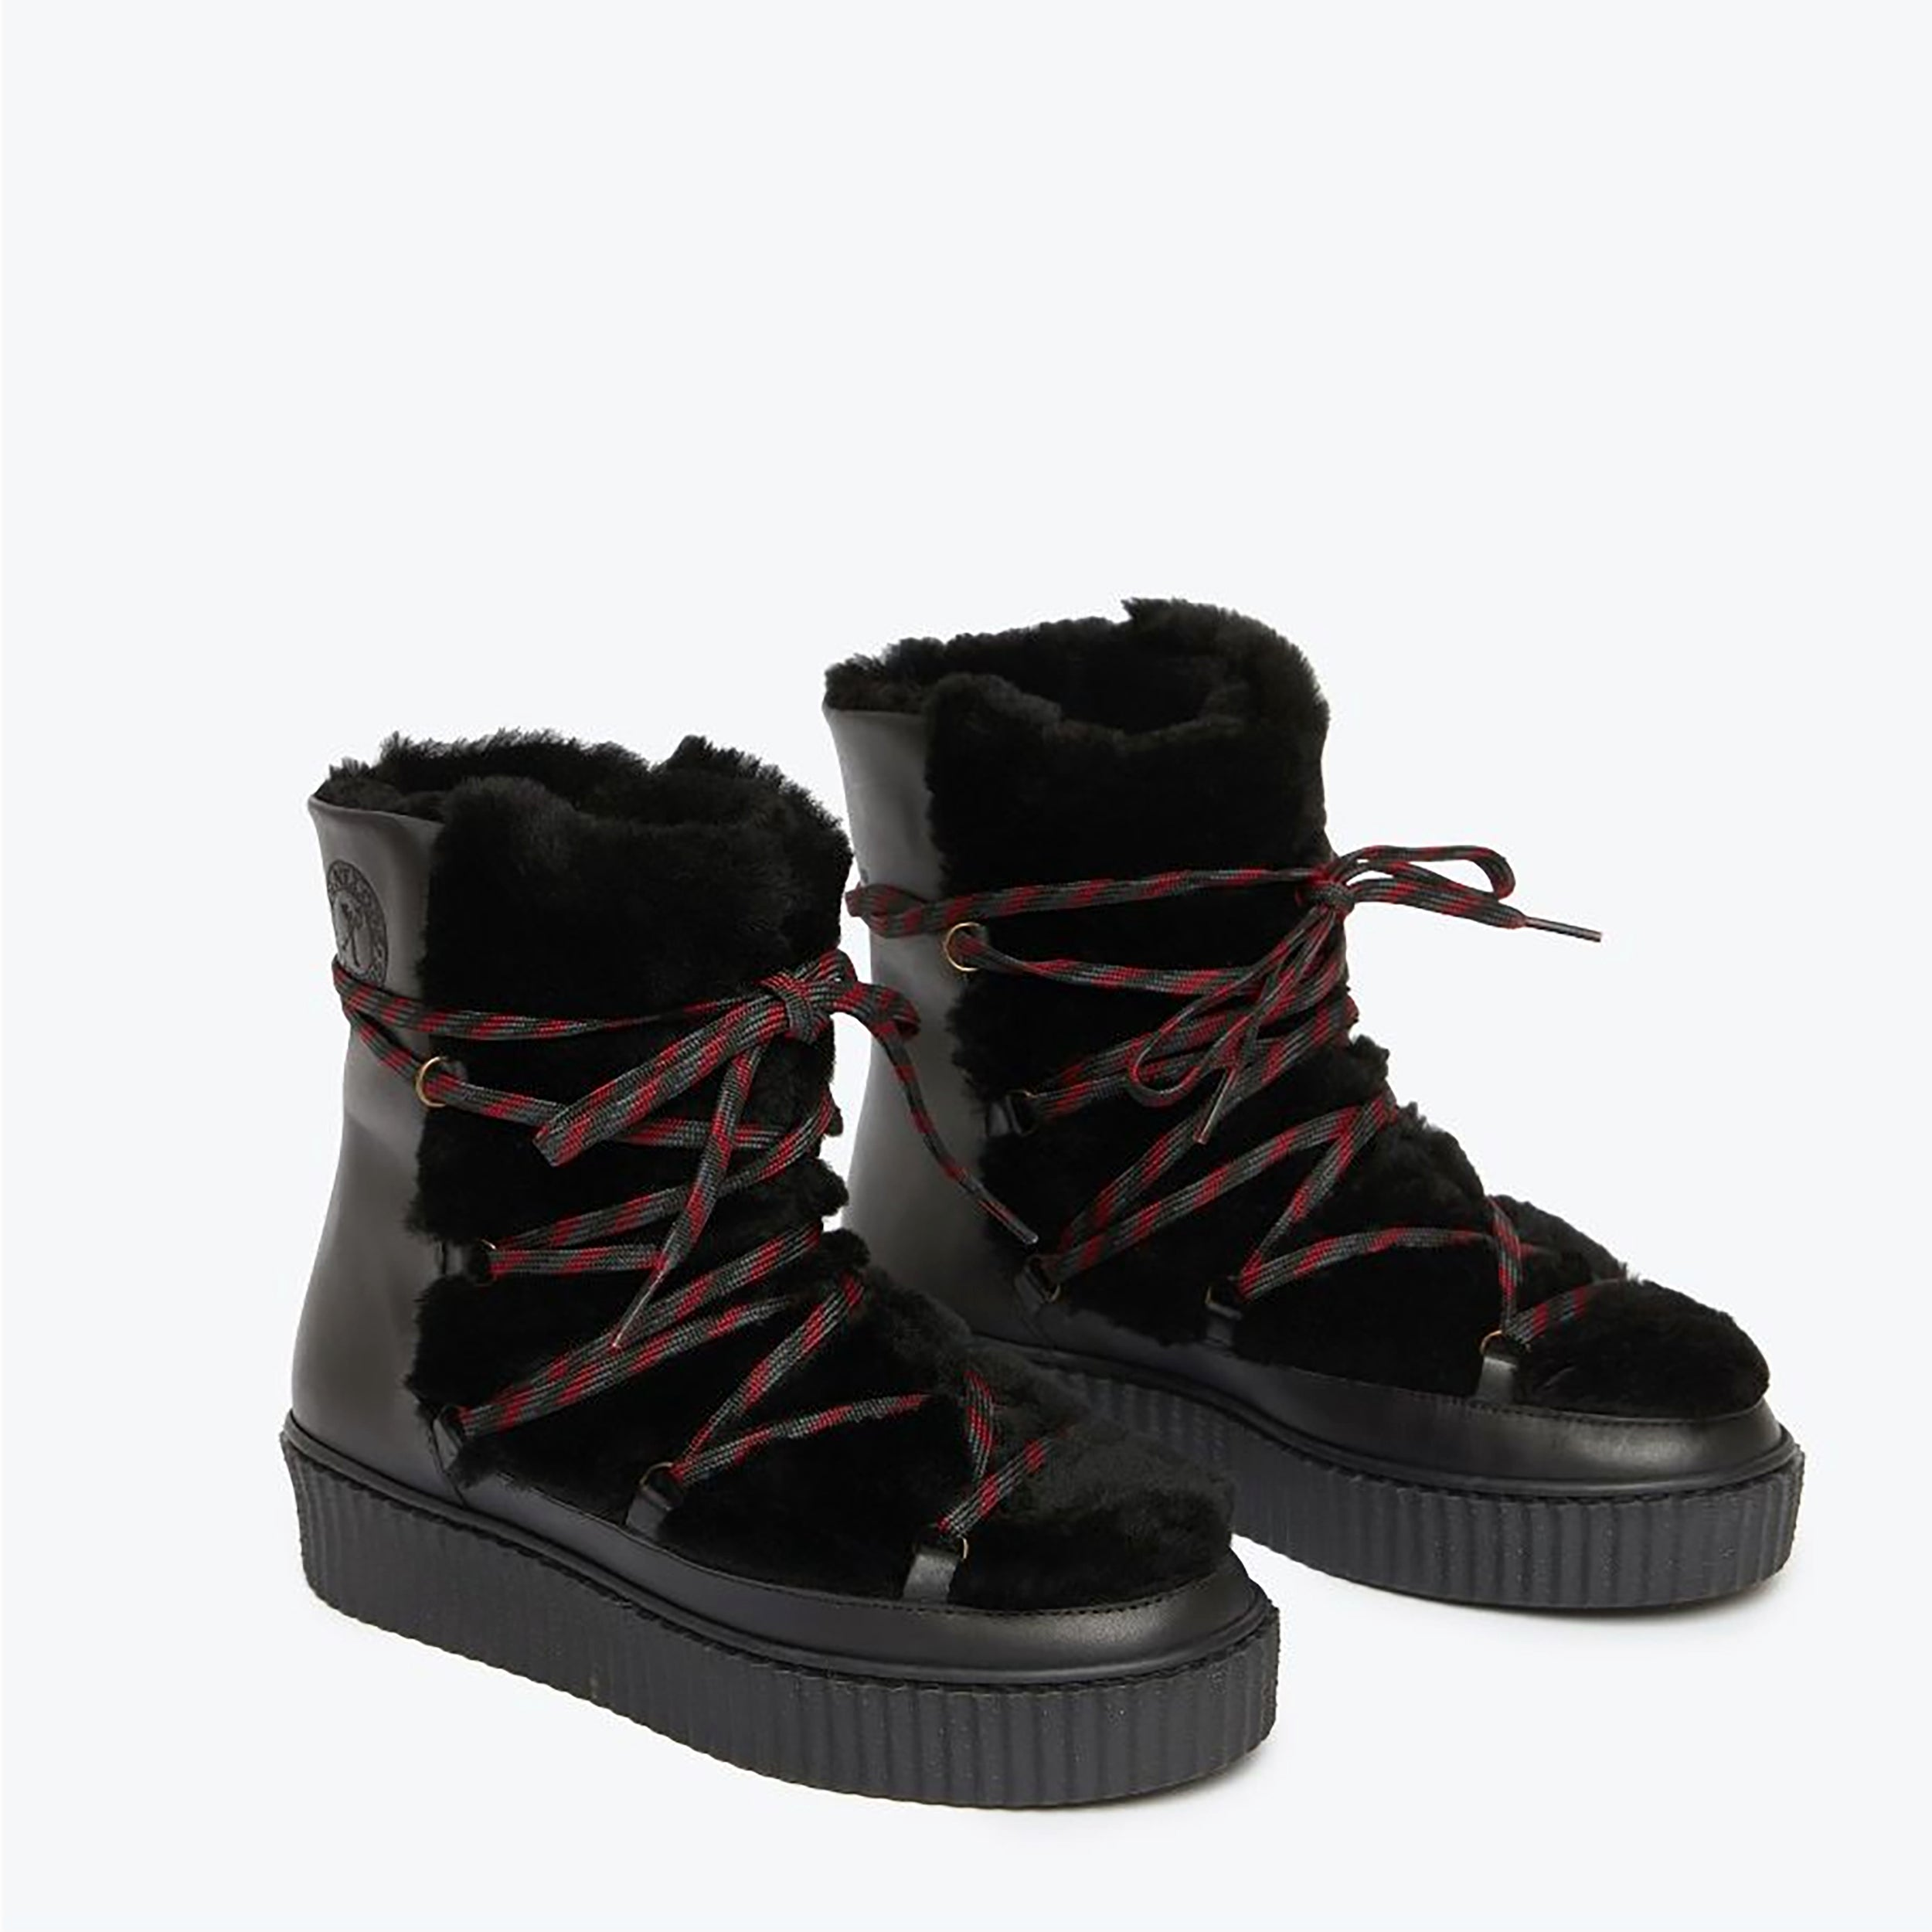 Hetre Alresford Boutique Black Galaxy Snow Boot Penelope Chilvers